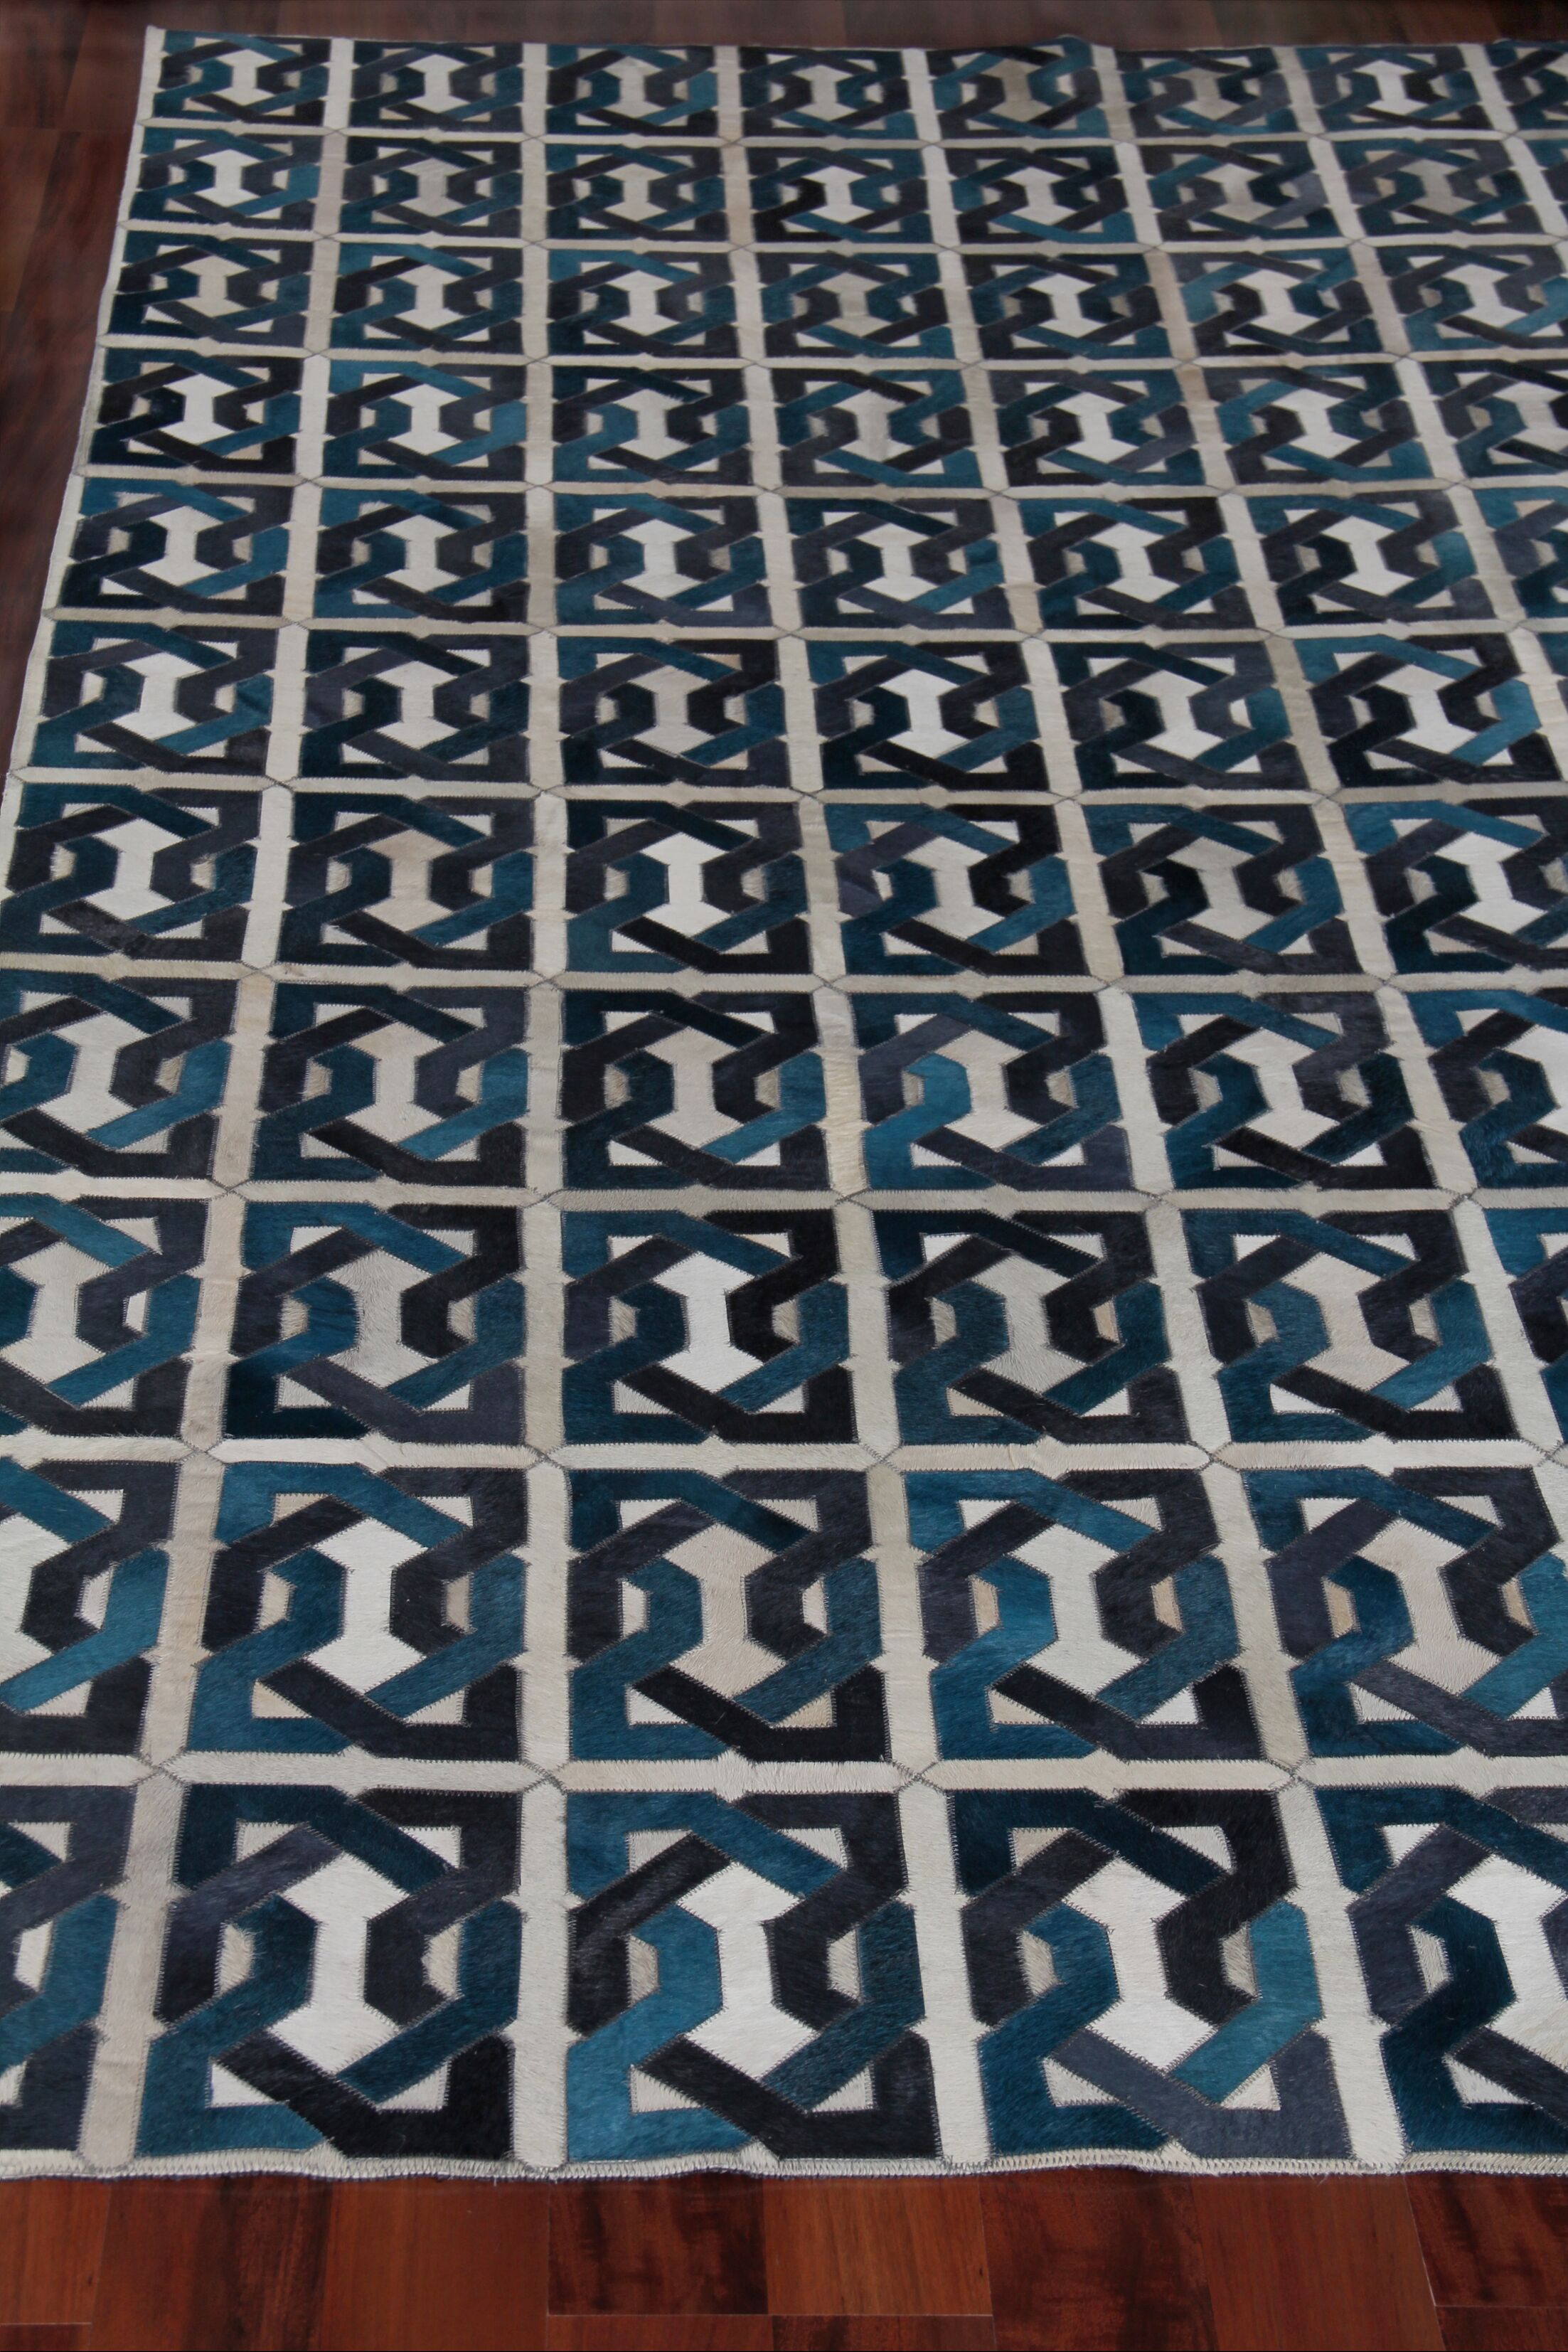 Natural Hide Leather Hand-Woven Teal/Black Area Rug Rug Size: Rectangle 5' x 8'